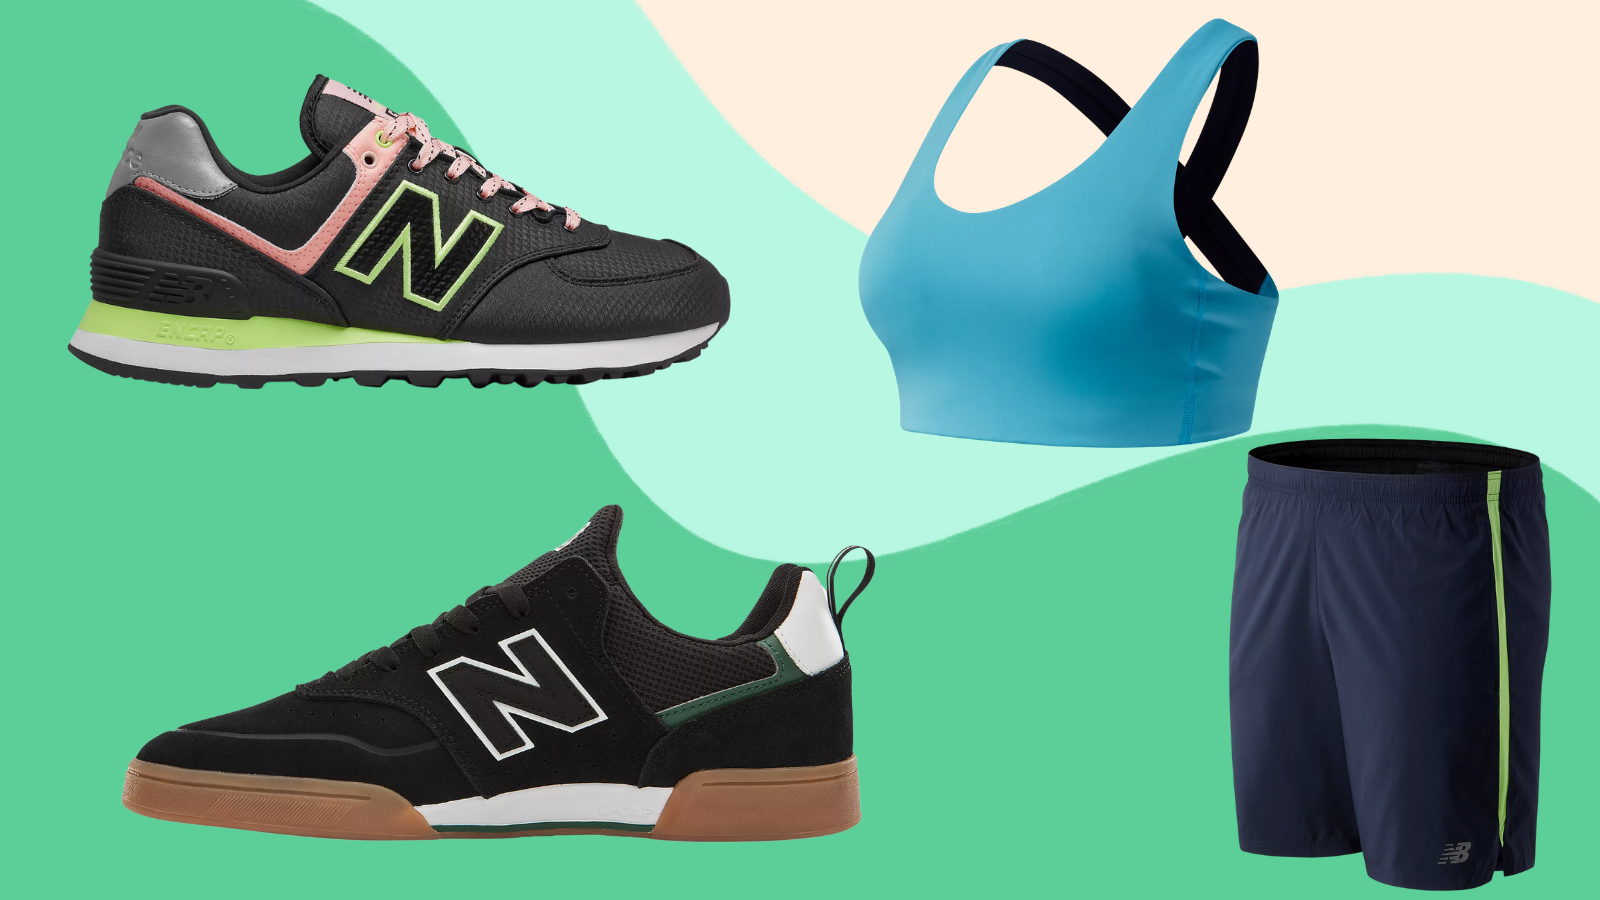 Prime Day 2021: Take an extra 10% off New Balance's semi-annual sale